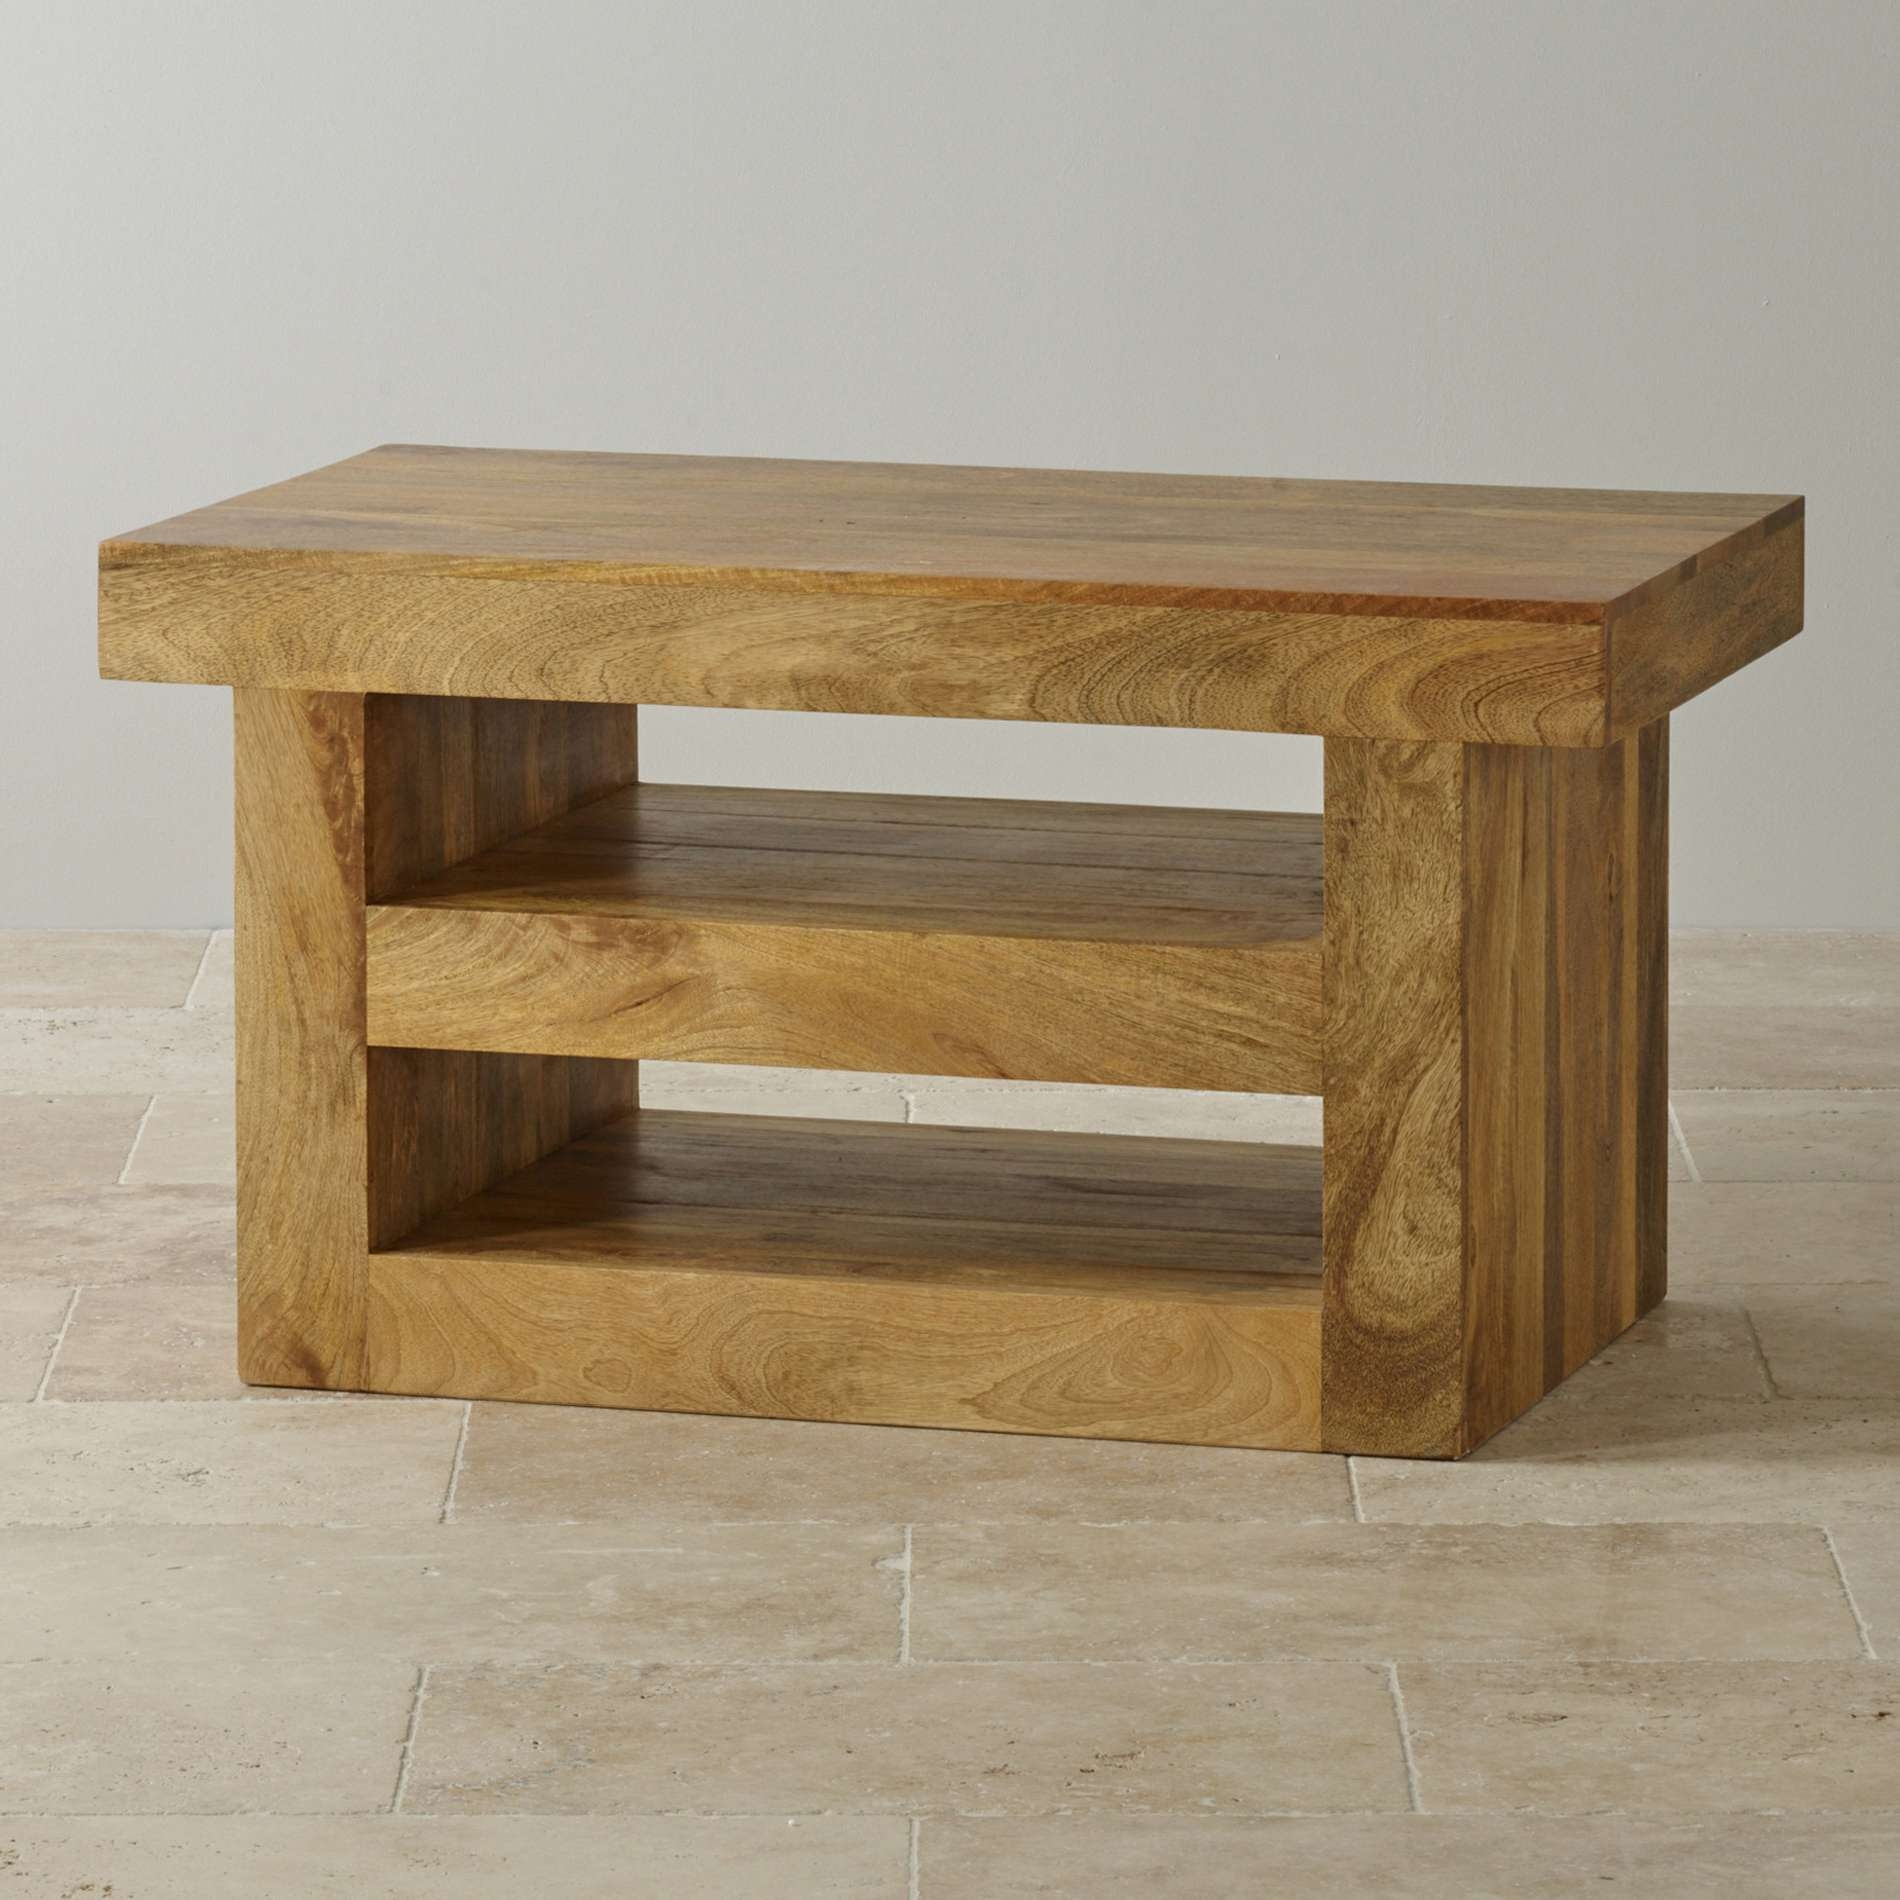 Tv Cabinets Oak Furniture Land Of Including Stand Light Wood Intended For Oak Furniture Tv Stands (View 14 of 20)